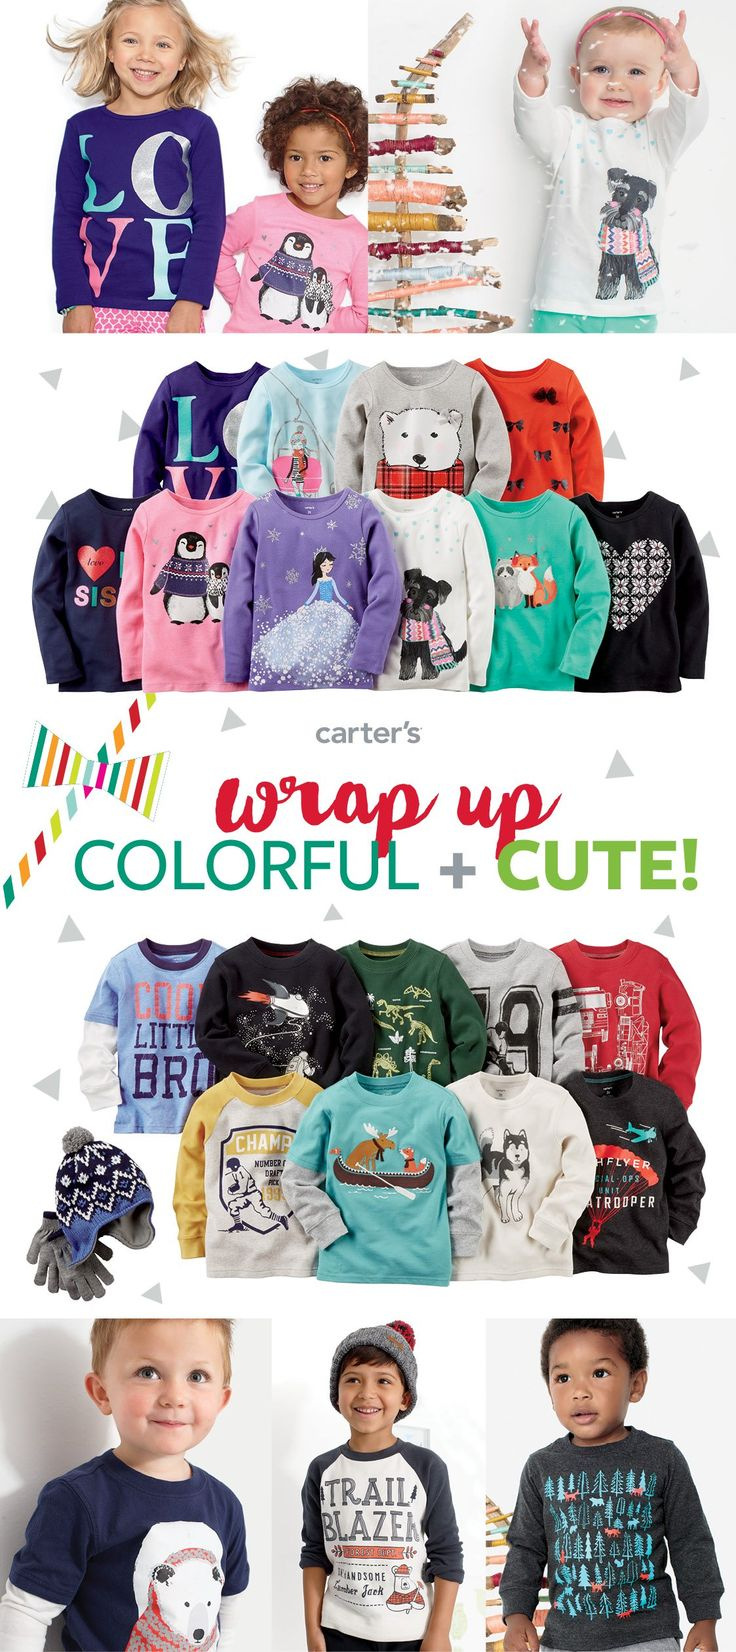 Mix & match her favorites + collect them all for him! Fun graphics add personality. Great value makes it easy. Comfy style makes it a winner!